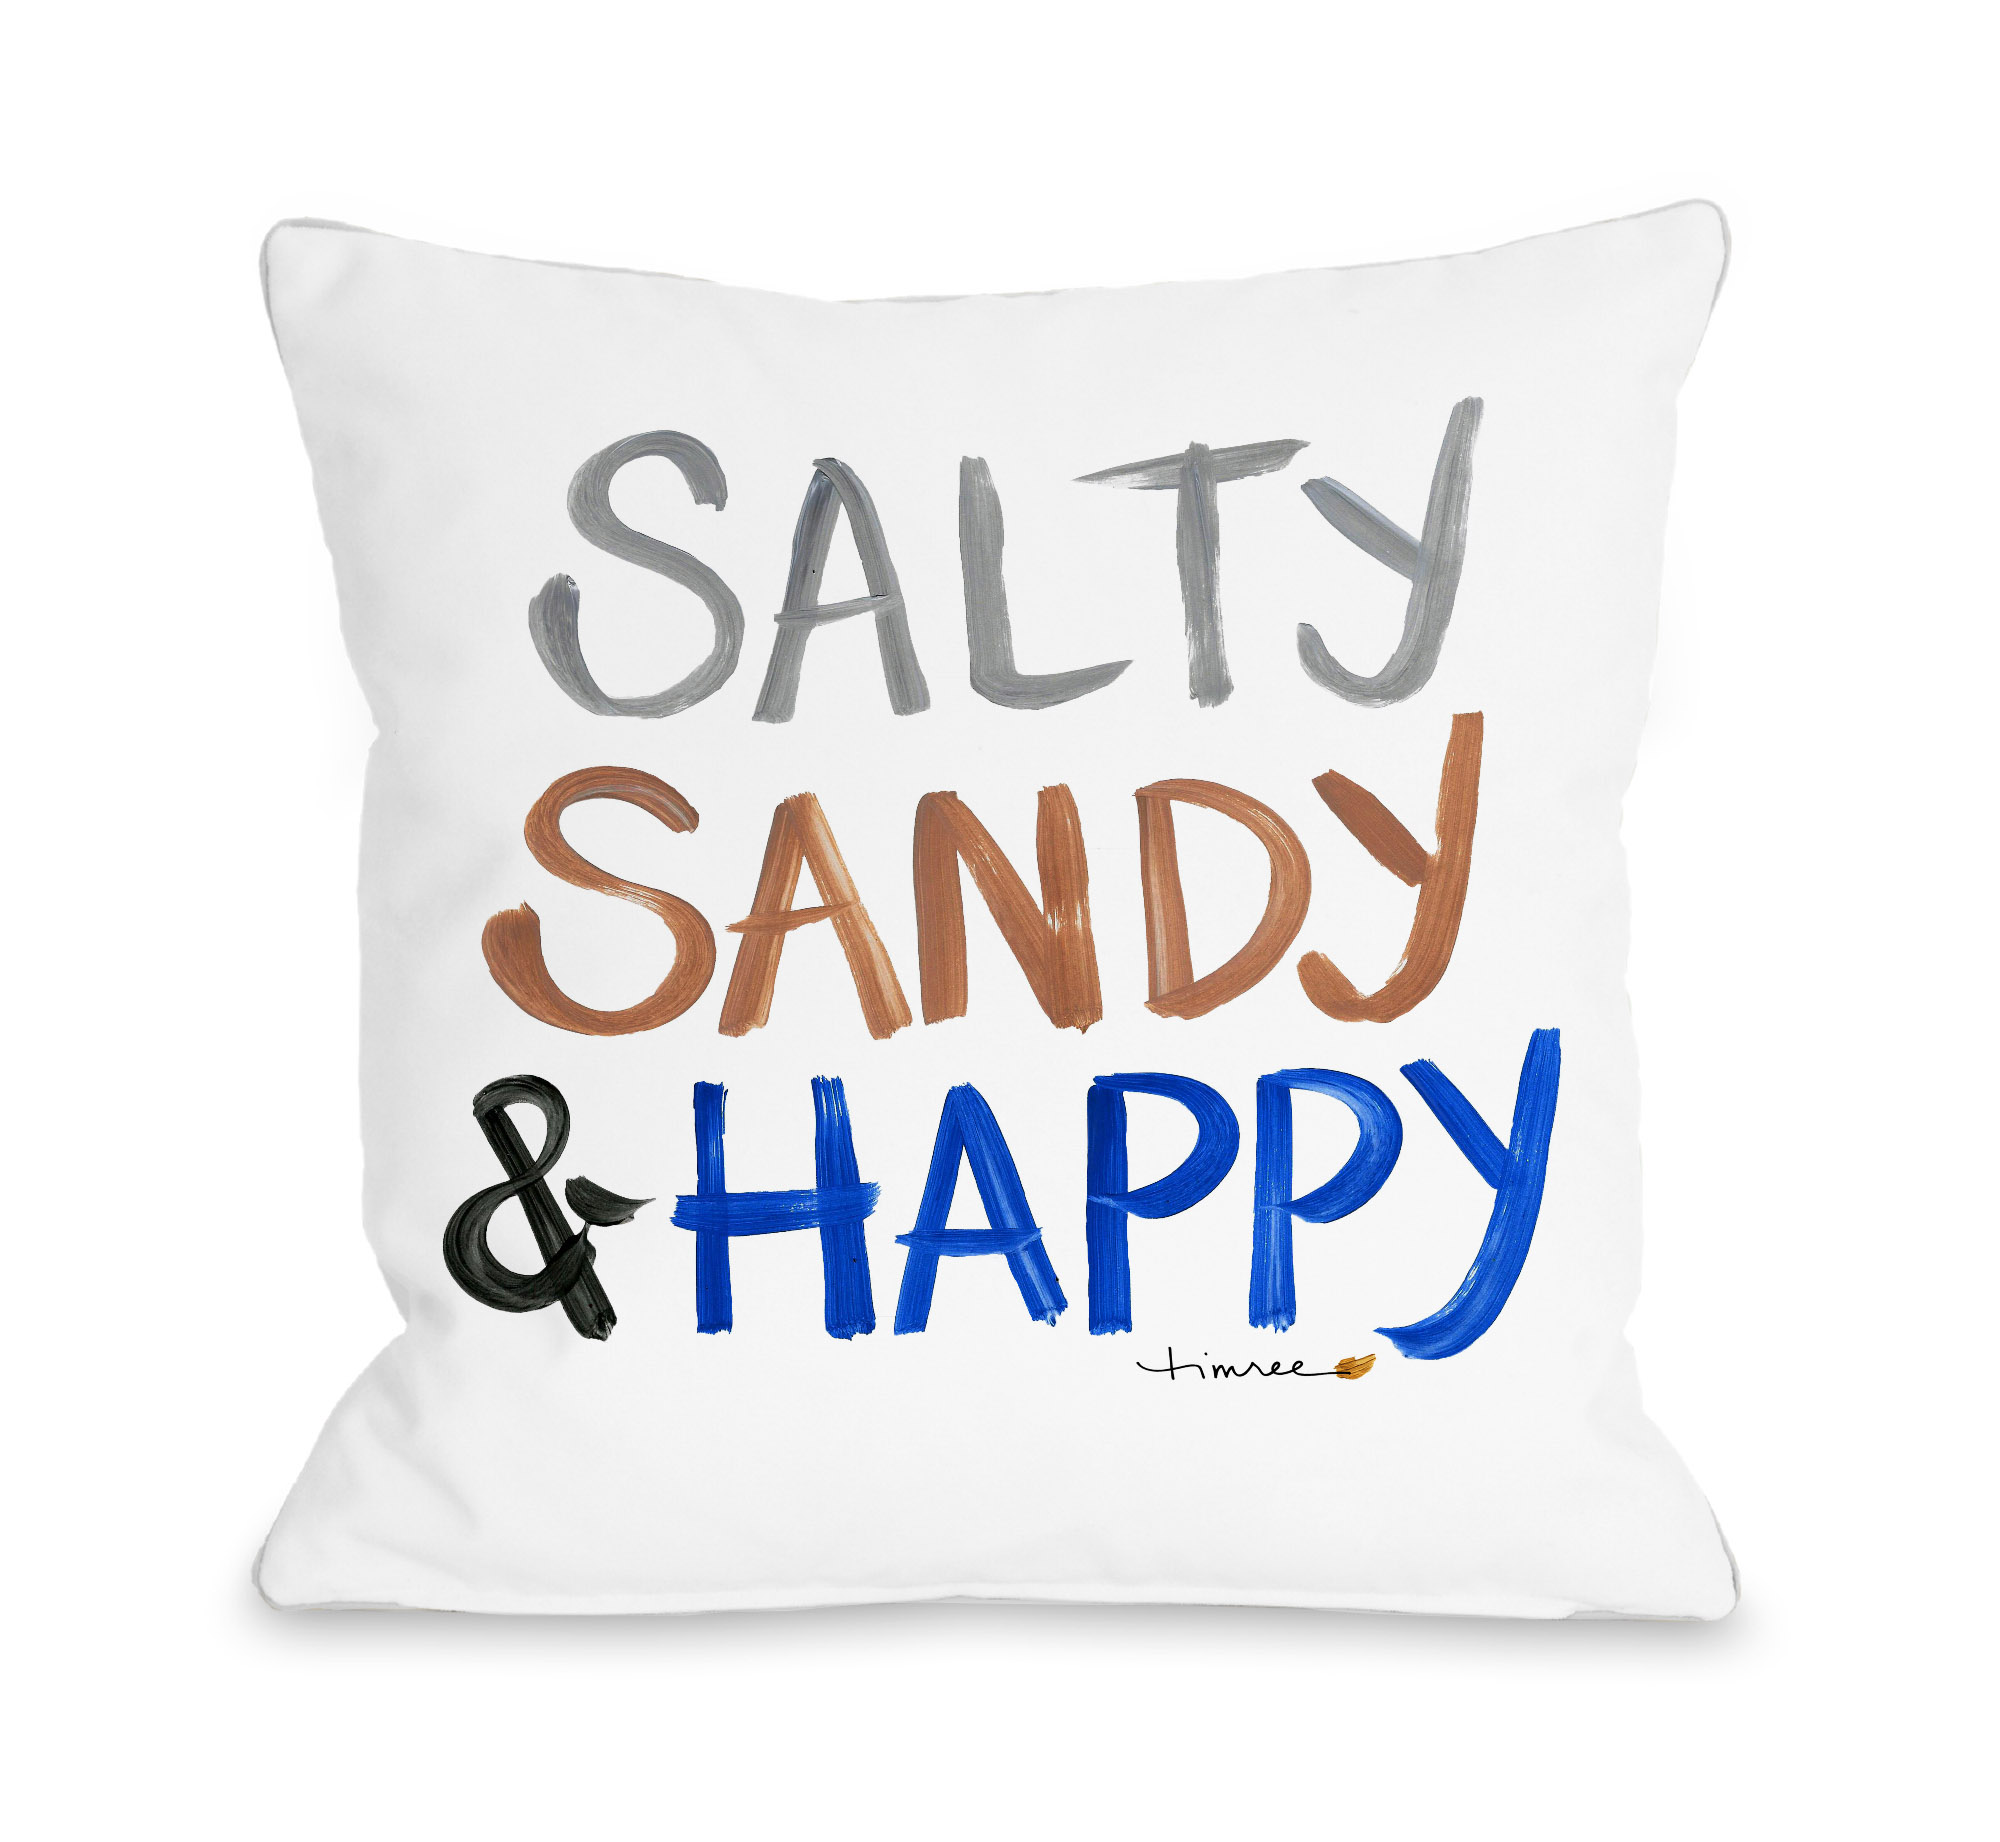 Salty, Sandy & Happy - Multi 16x16 Pillow by Timree